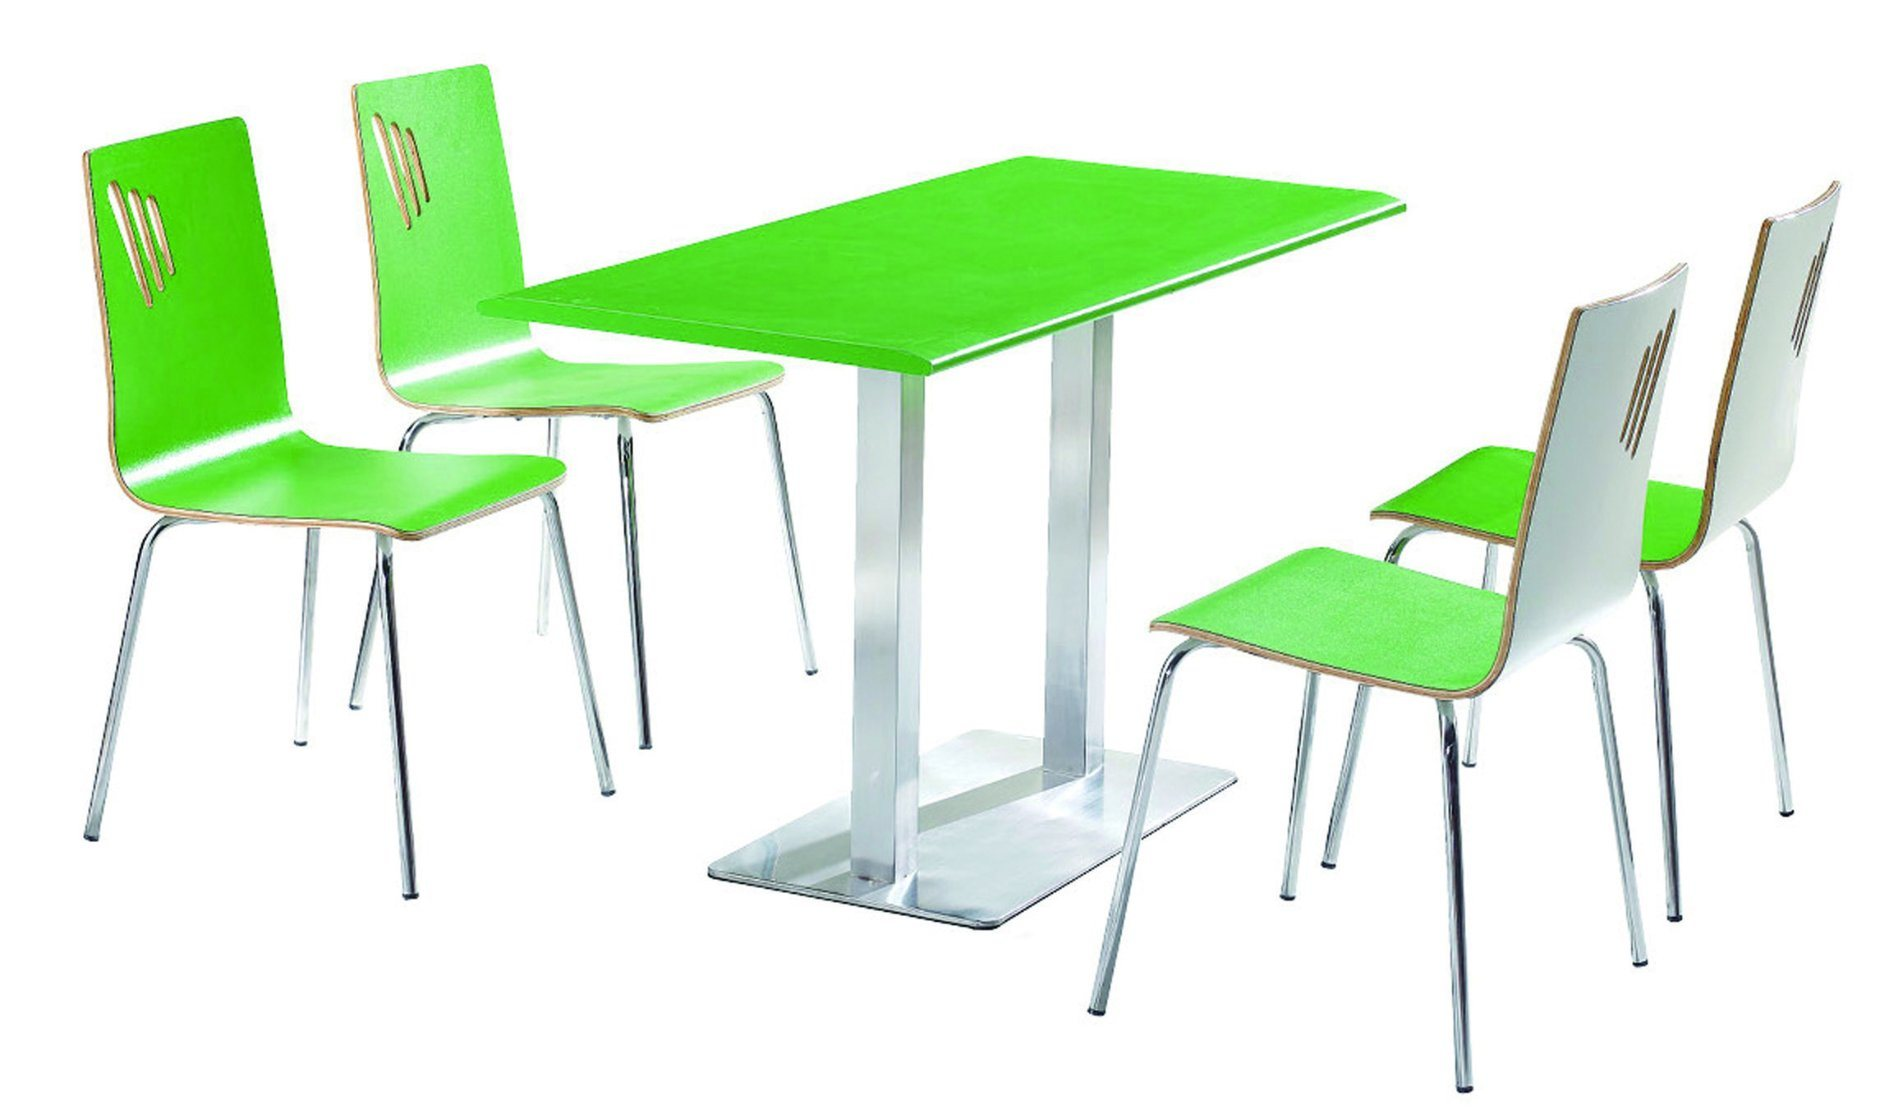 4 Seats Dining Table and Chair Canteen Table Fast Food Table with Chairs